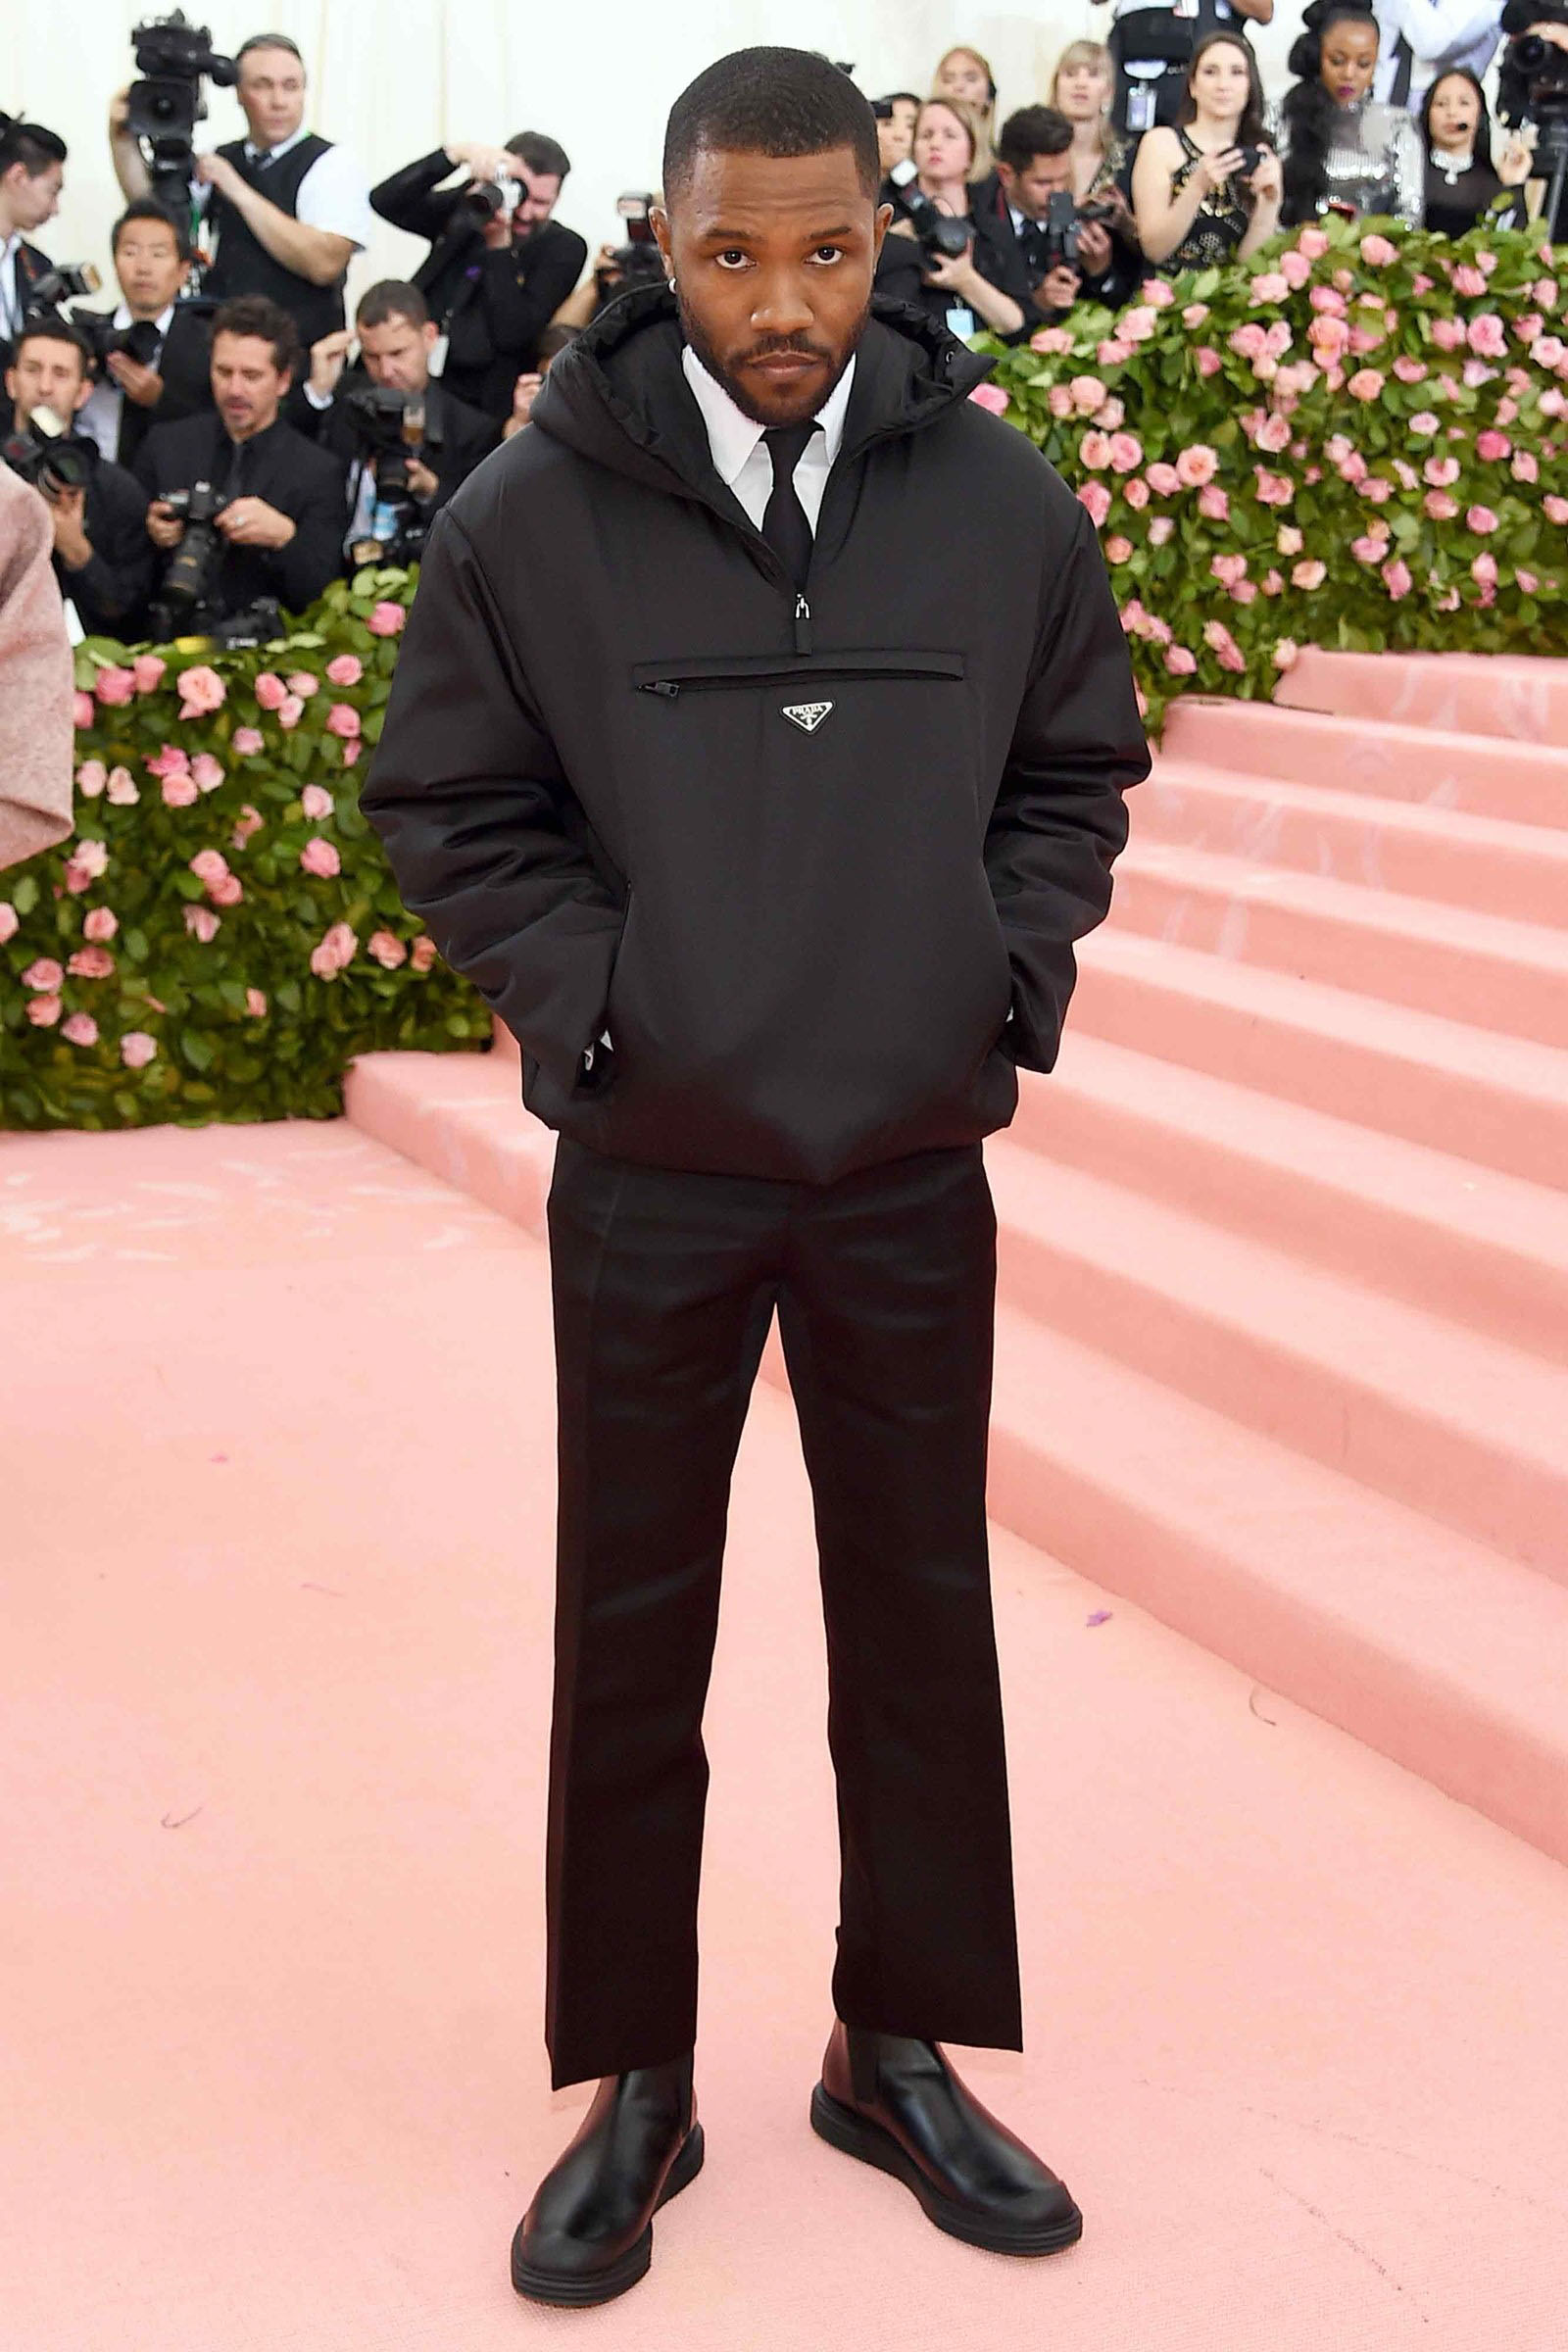 Best dressed men at Met Gala 2019: Frank Ocean